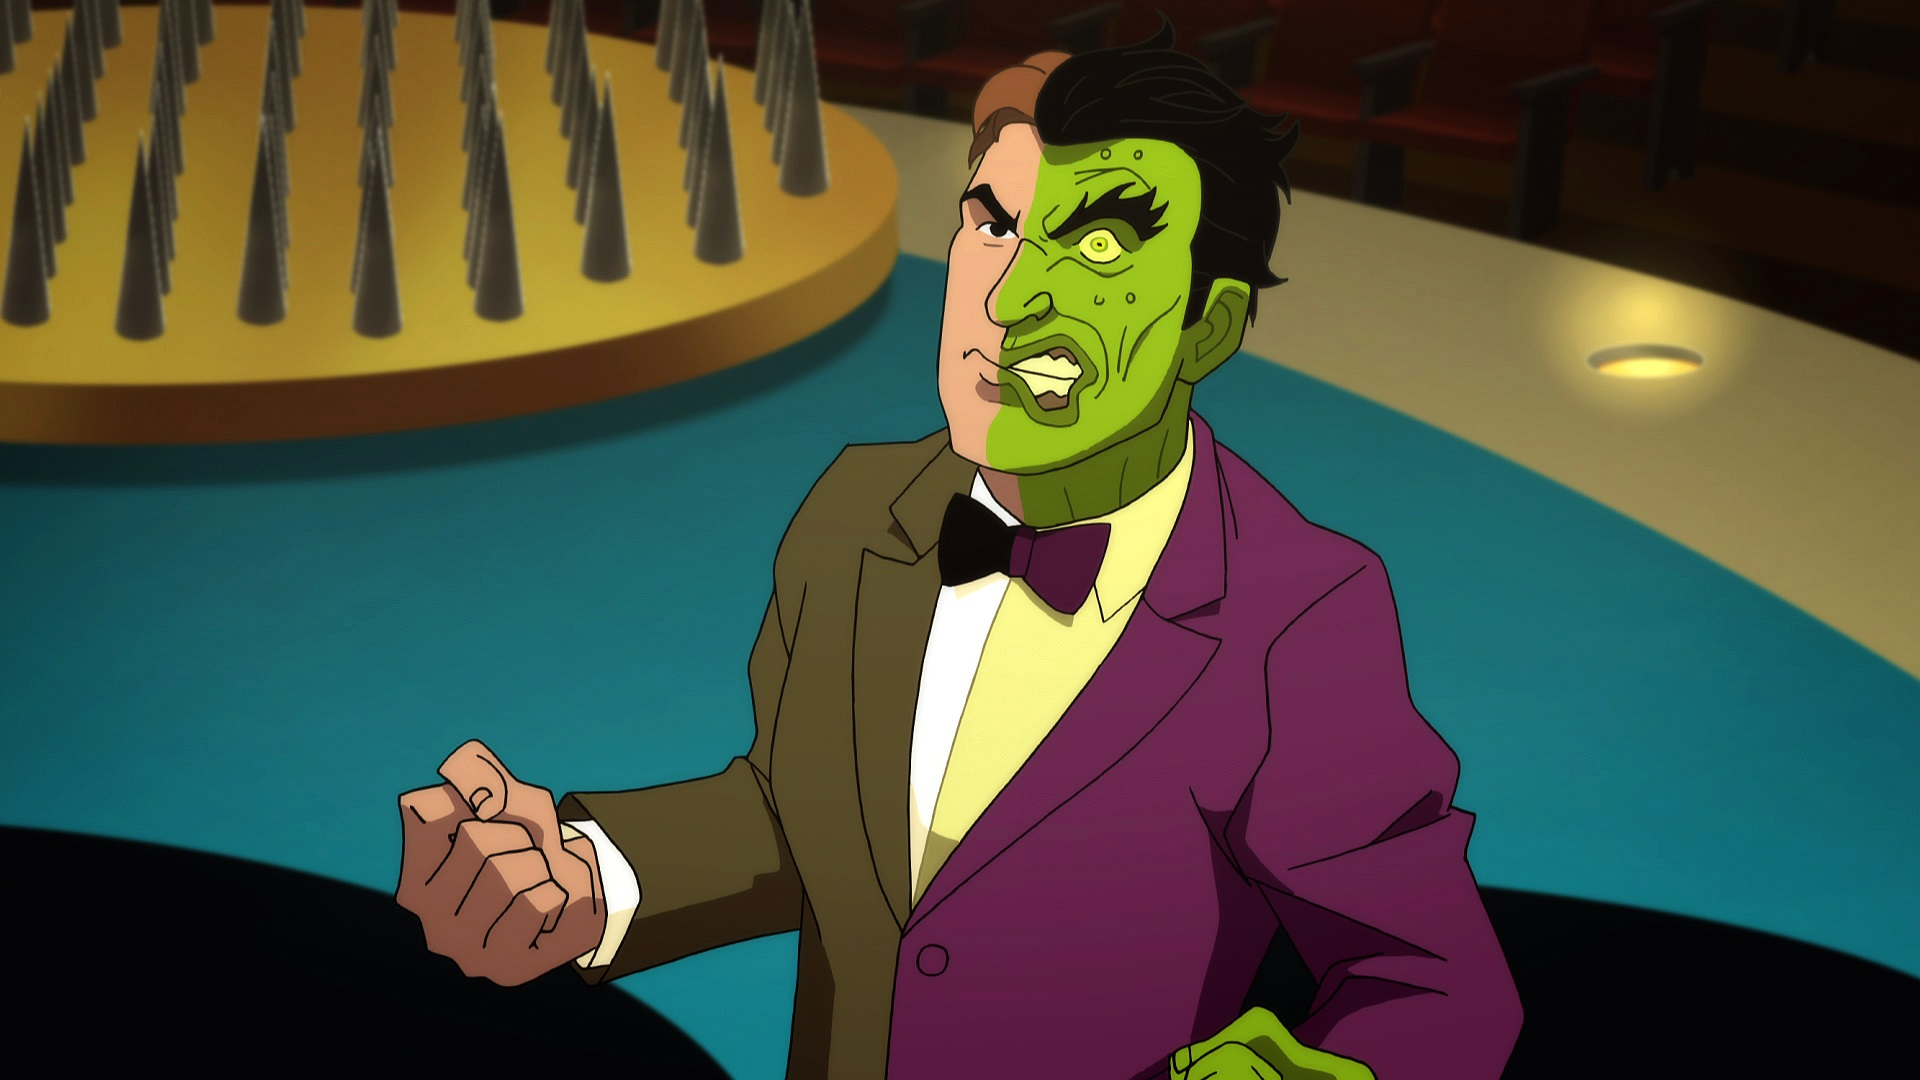 Two Face (voiced by William Shatner) in Batman vs Two-Face (2017)